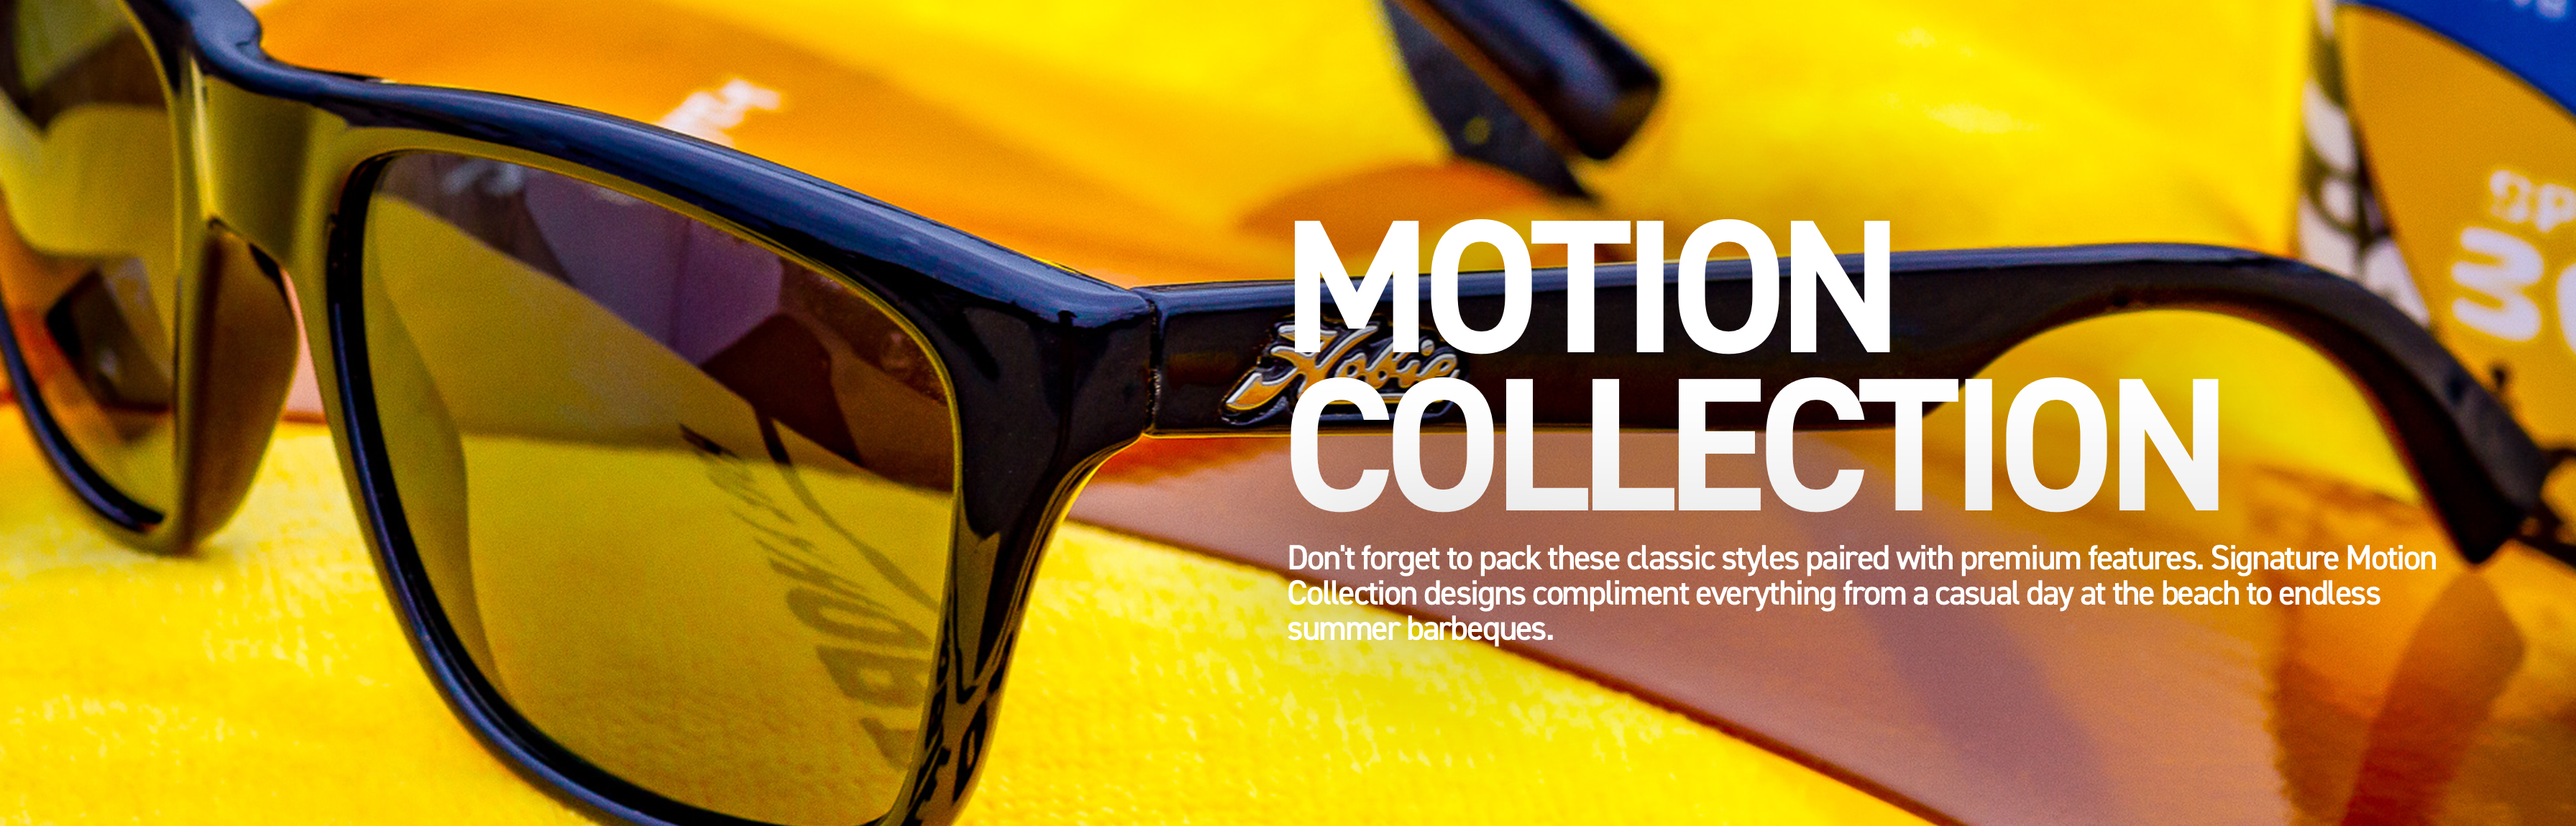 970a69ca6b3 Motion Collection Polycarbonate Polarized Sunglasses